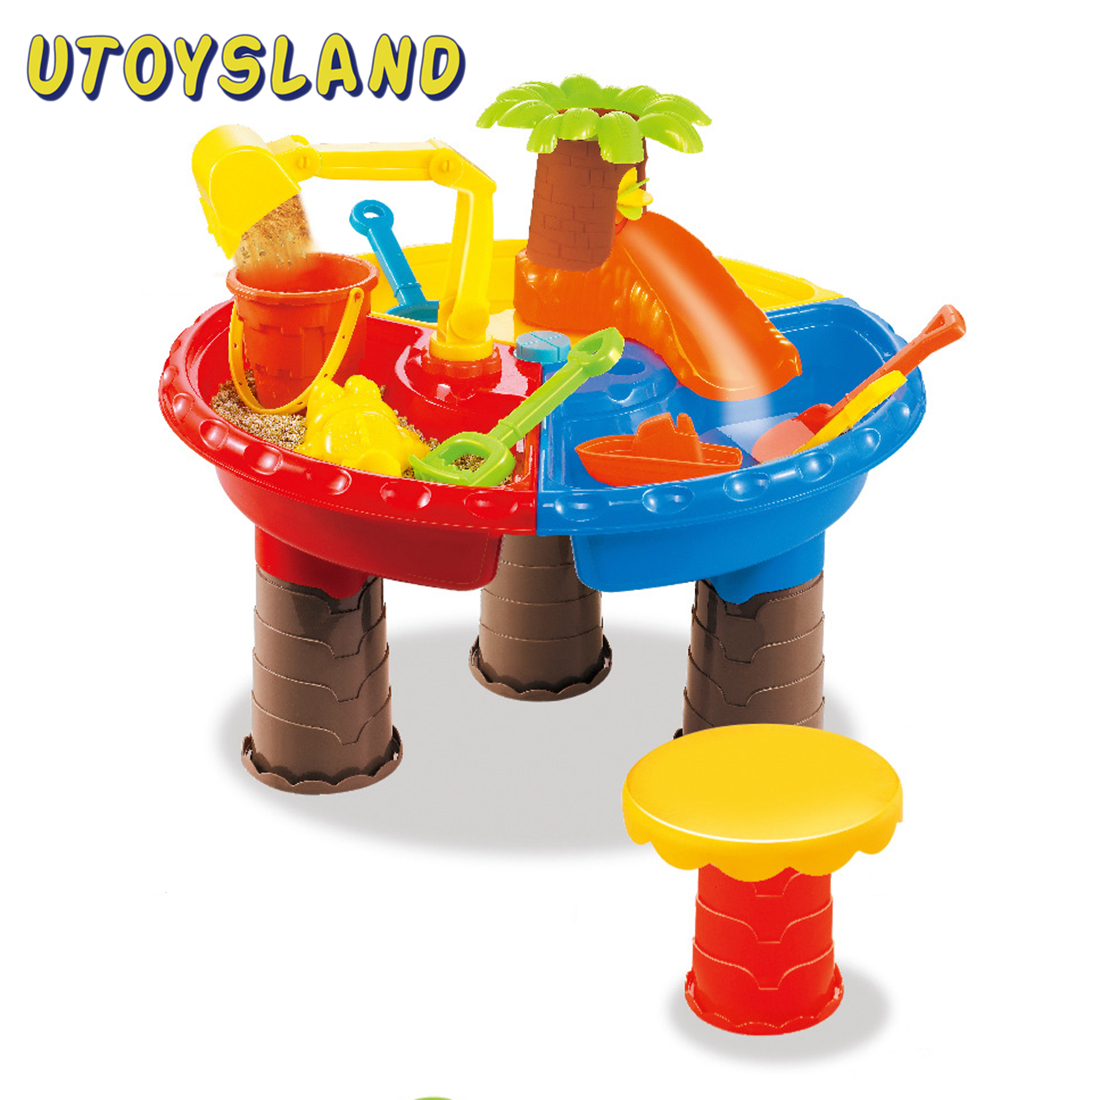 22Pcs Kids Plastic Sand Pit Set Beach Sand Table Water Play Toy Outdoor Beach Sanding Toys For Children Kids